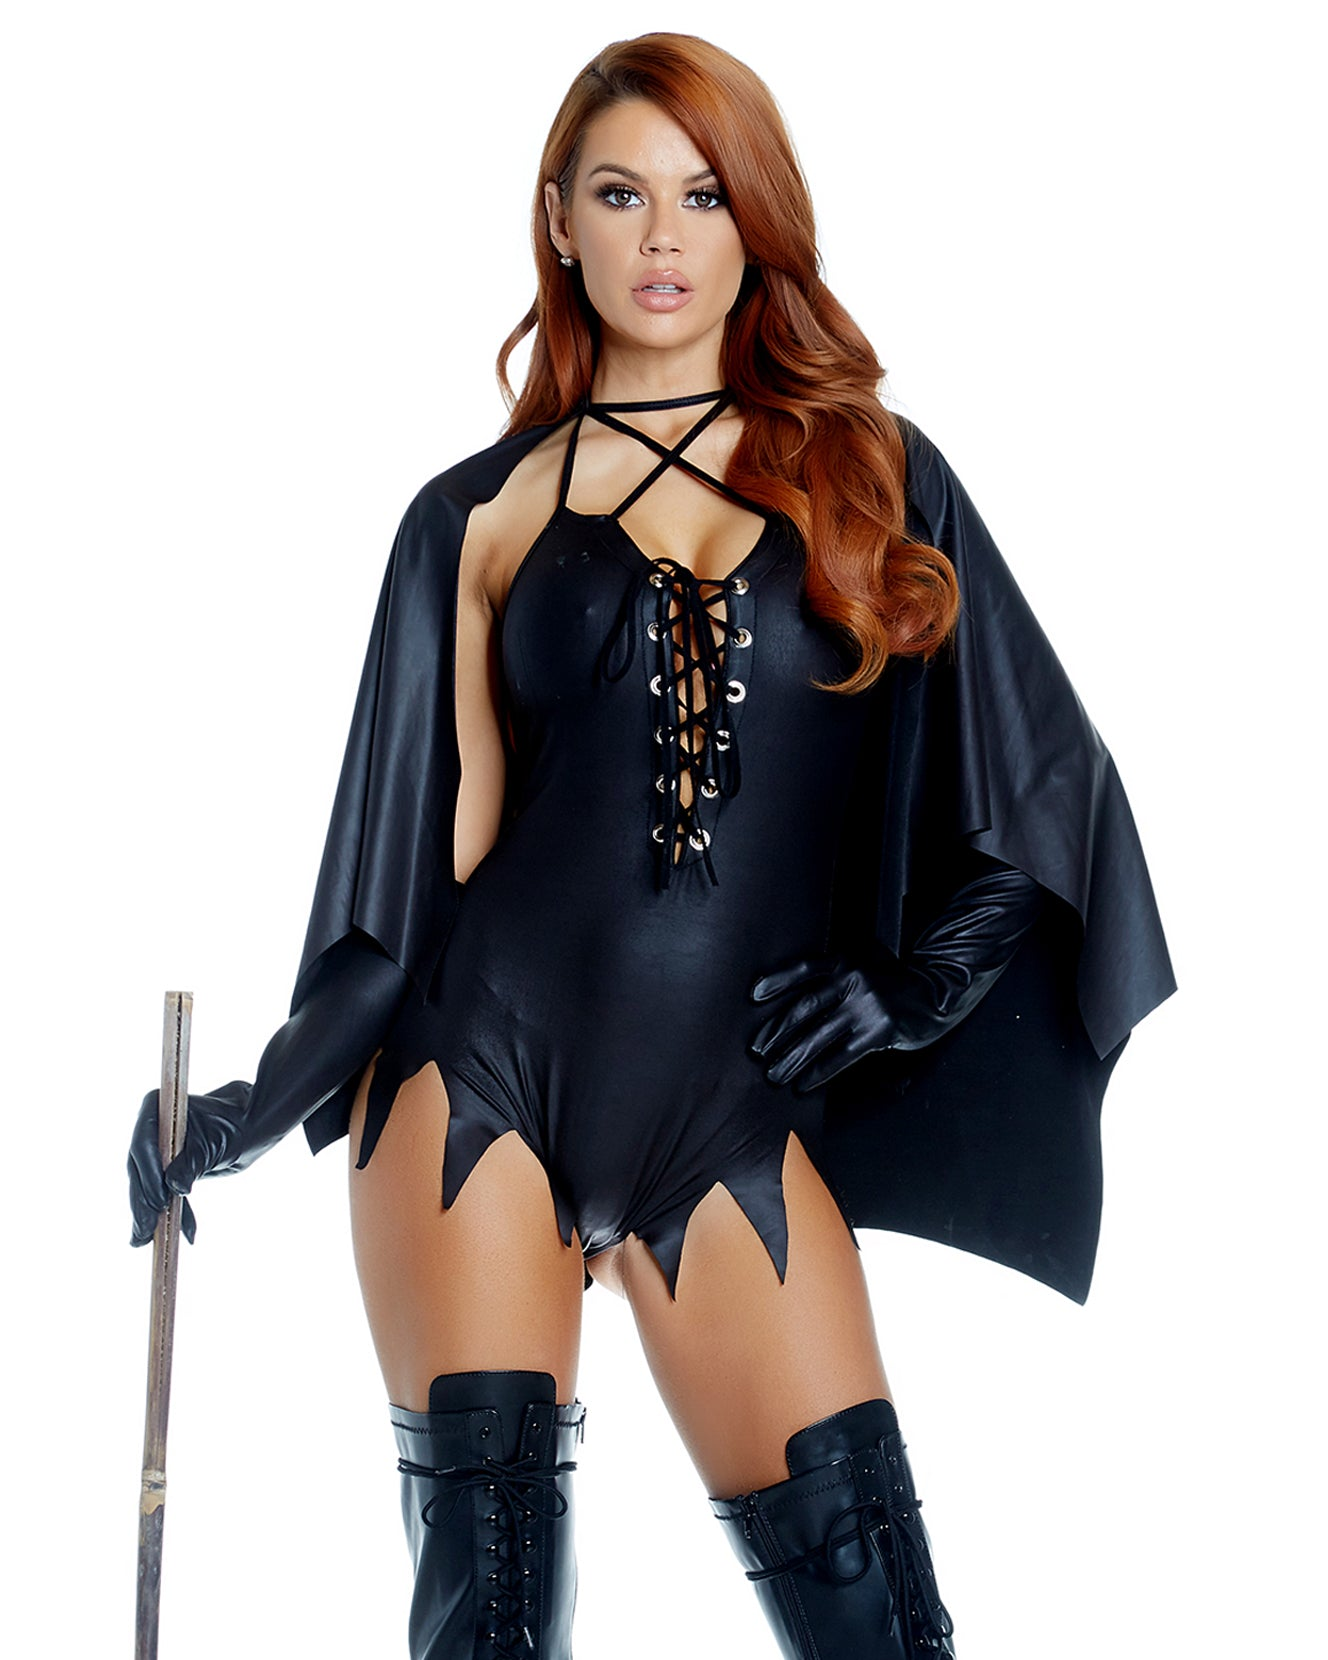 Witch, Please! Bodysuit & Cape Costume -  rave wear, rave outfits, edc, booty shorts